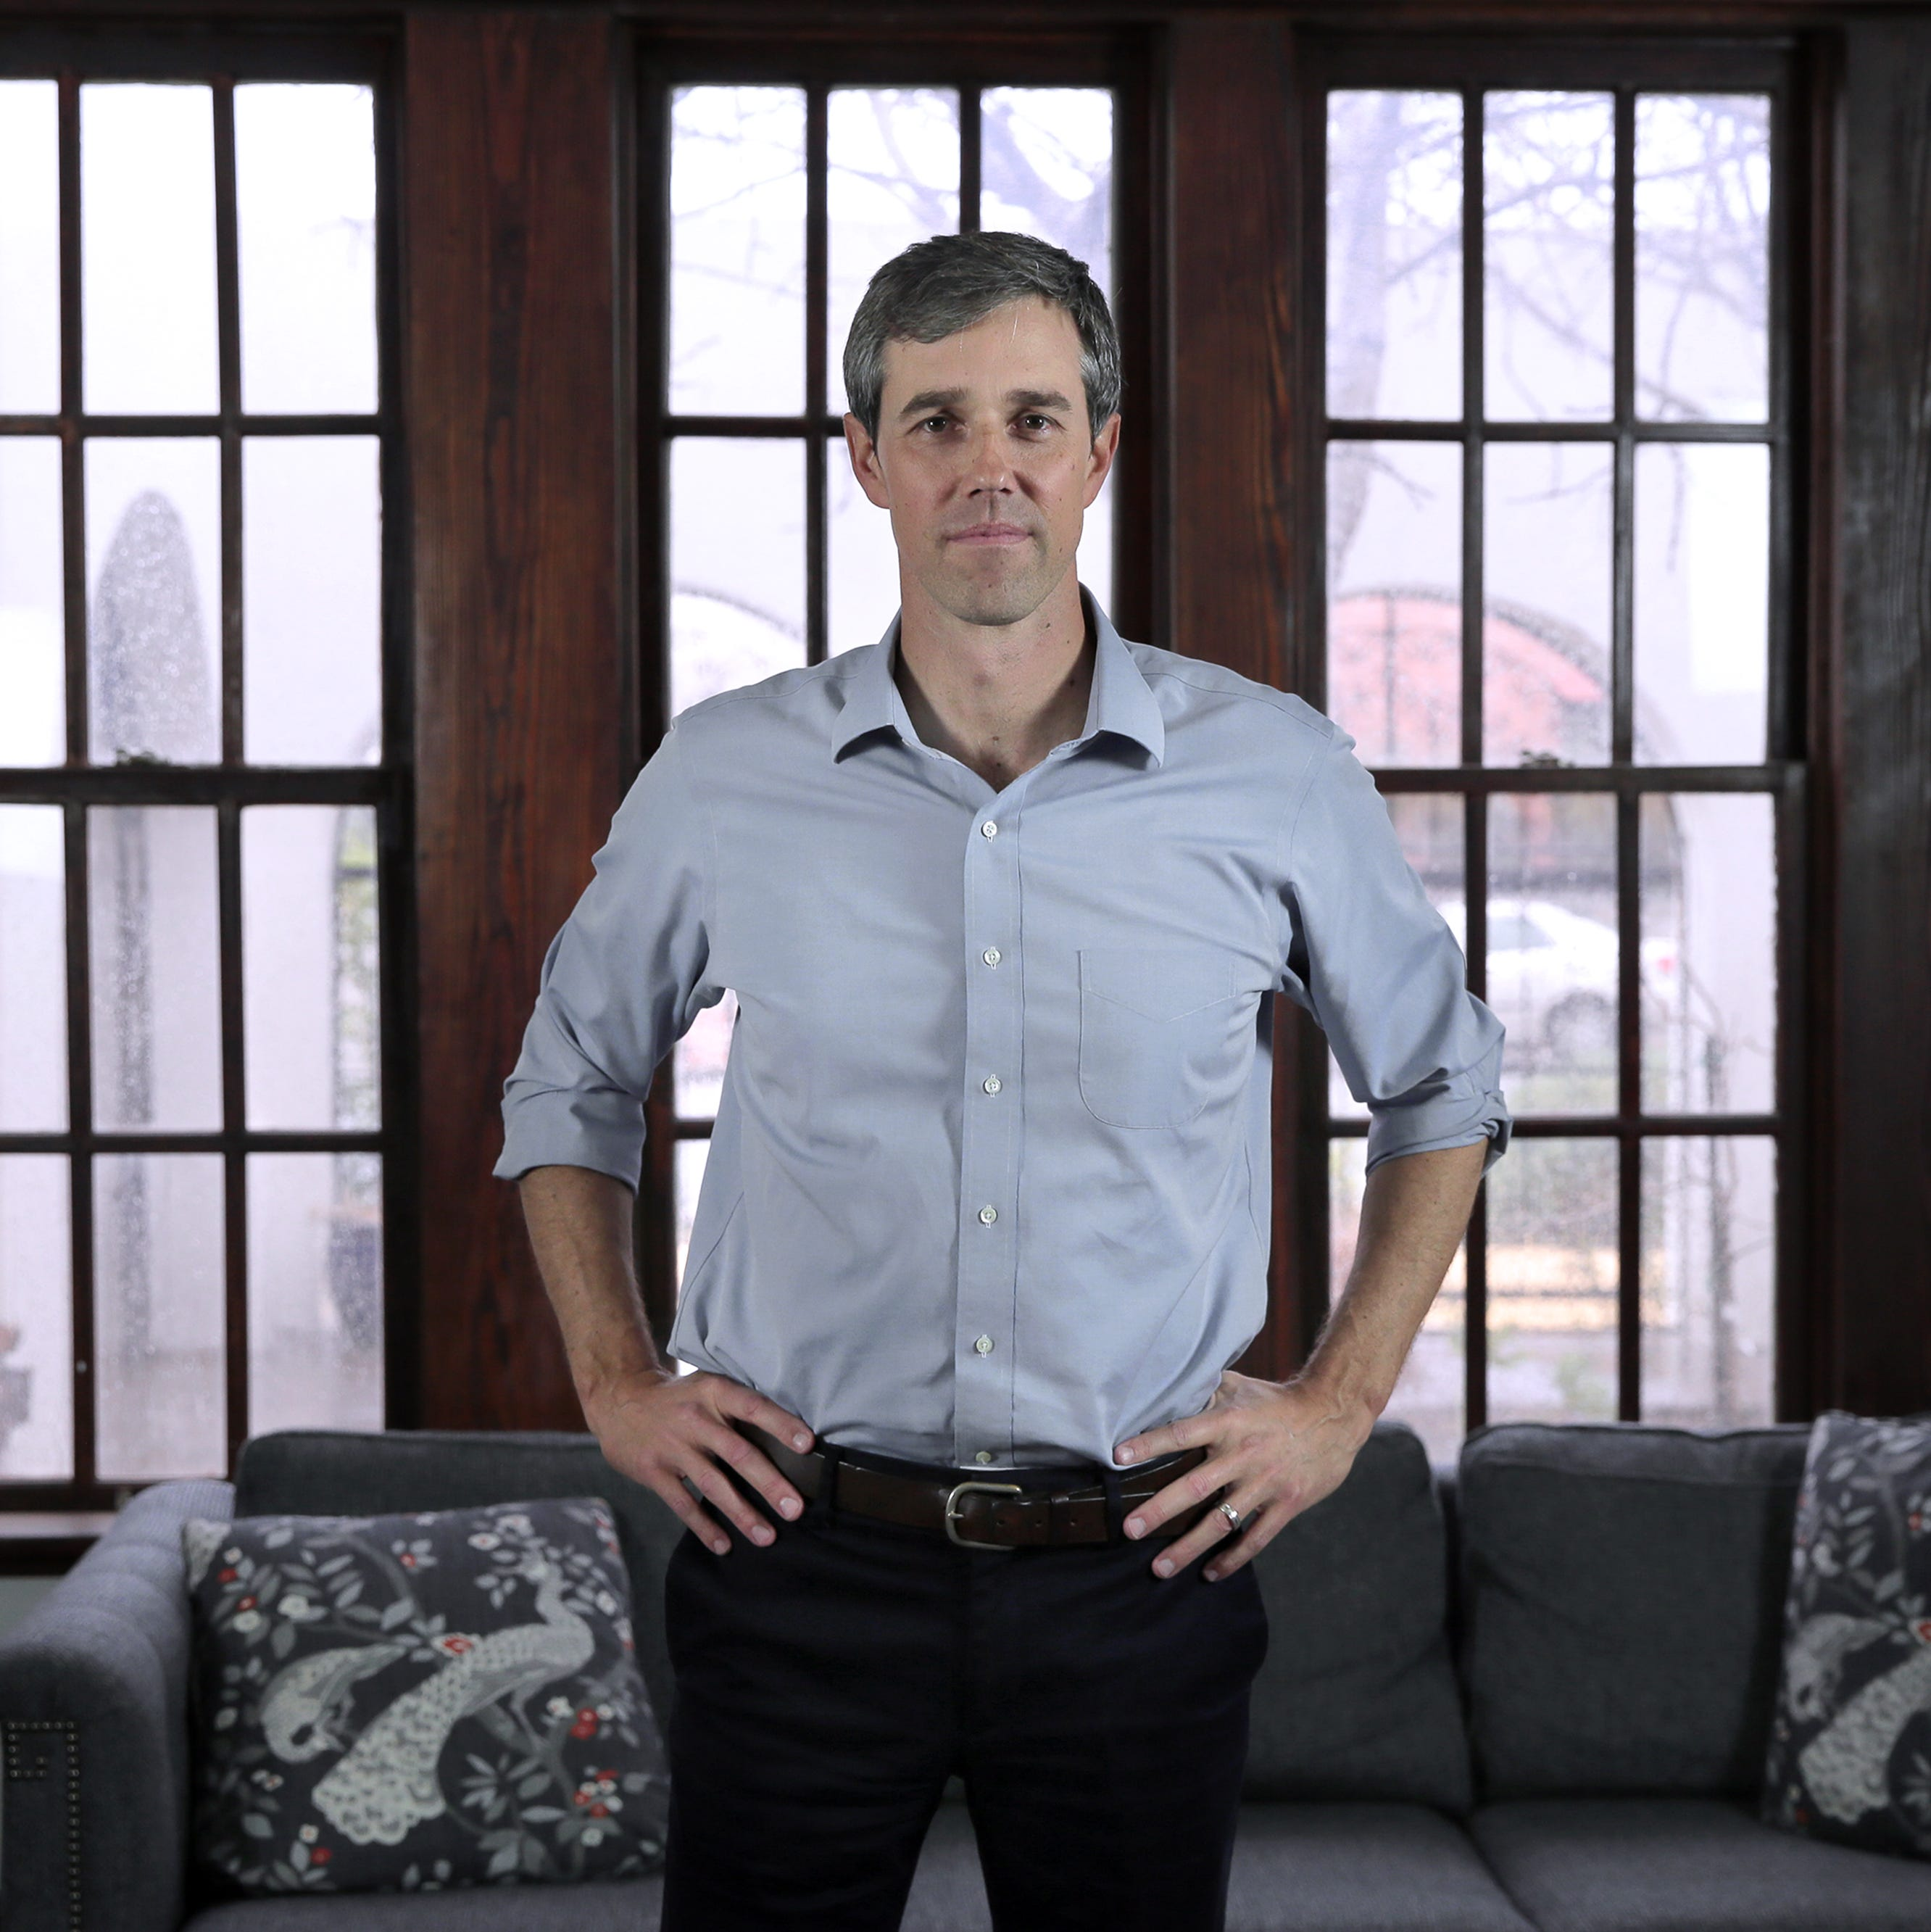 GOP calls Beto O'Rourke 'America's nightmare' after he announces 2020 presidential run